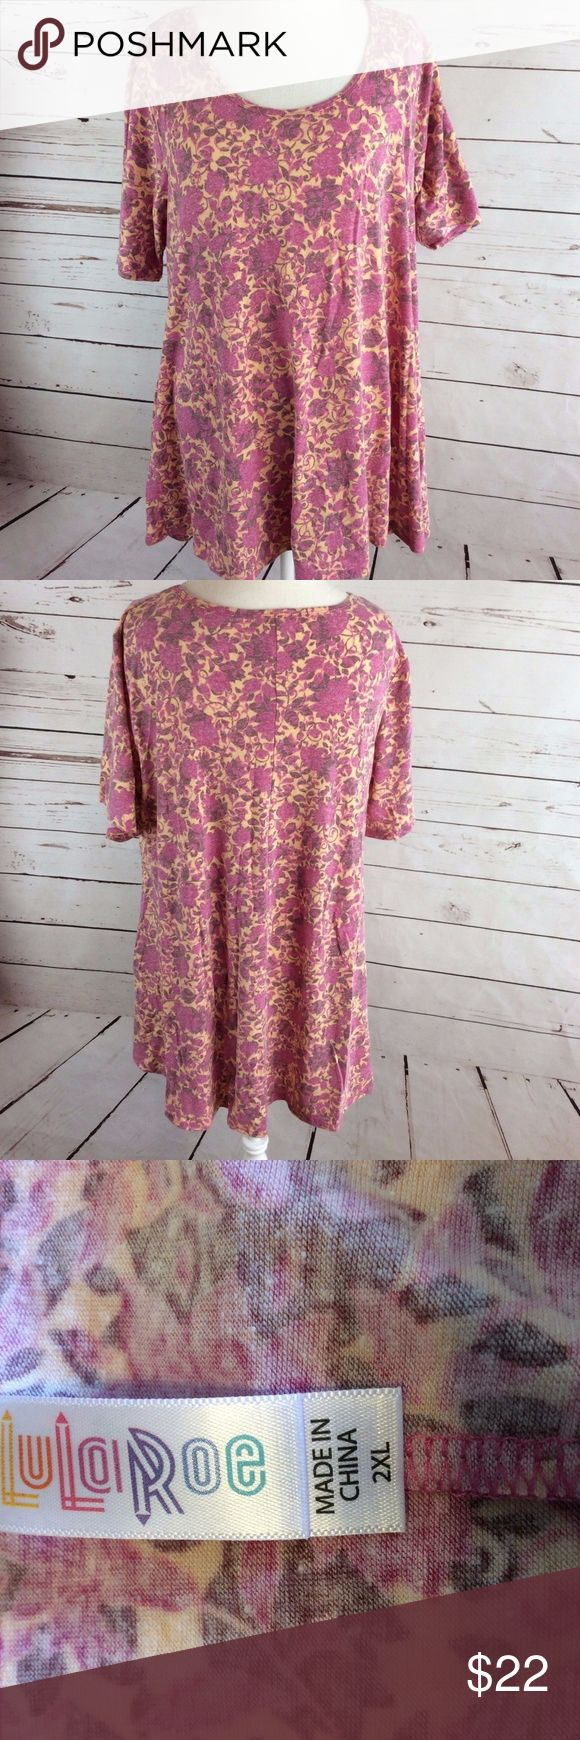 Lularoe Womens T Shirt 2XL Tee Soft Yellow & Multi 100% money back guarantee, free returns and excellent customer service.  Your item will ship within 24 hours after payment is received (excluding weekends and Holidays)  Please let us know if you have any questions.   Lularoe Womens Classic Tee 2XL Soft Yellow & Multicolored Floral  XX-Large  Location: H5  Our items are all from a pet free, smoke free home.  Items are purchased locally or donated so we are not aware if they have formally…